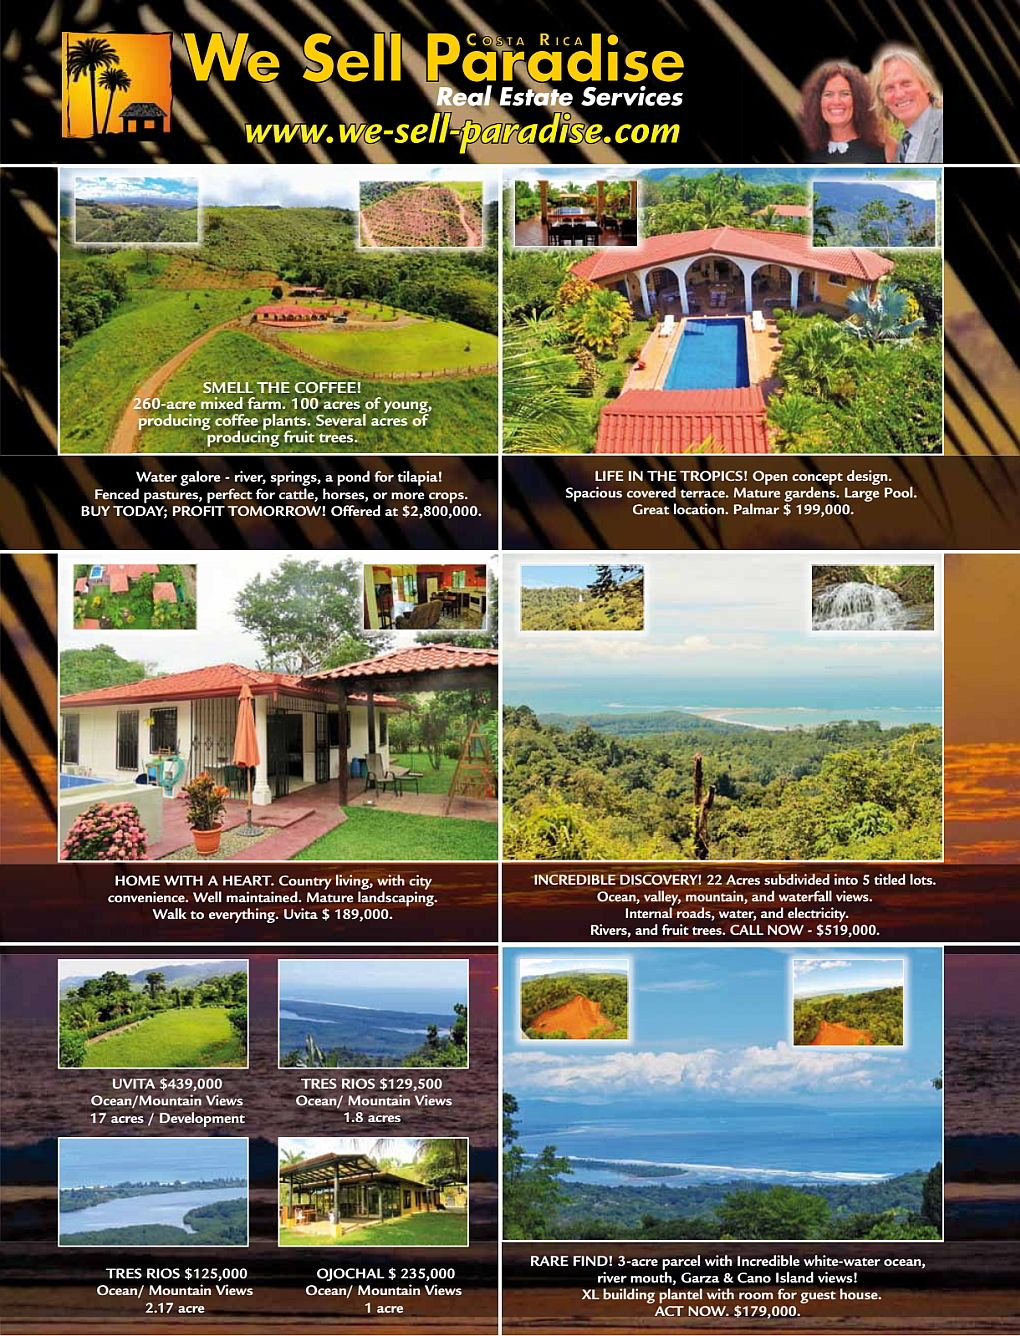 We Sell Paradise, real estate services Costa Rica